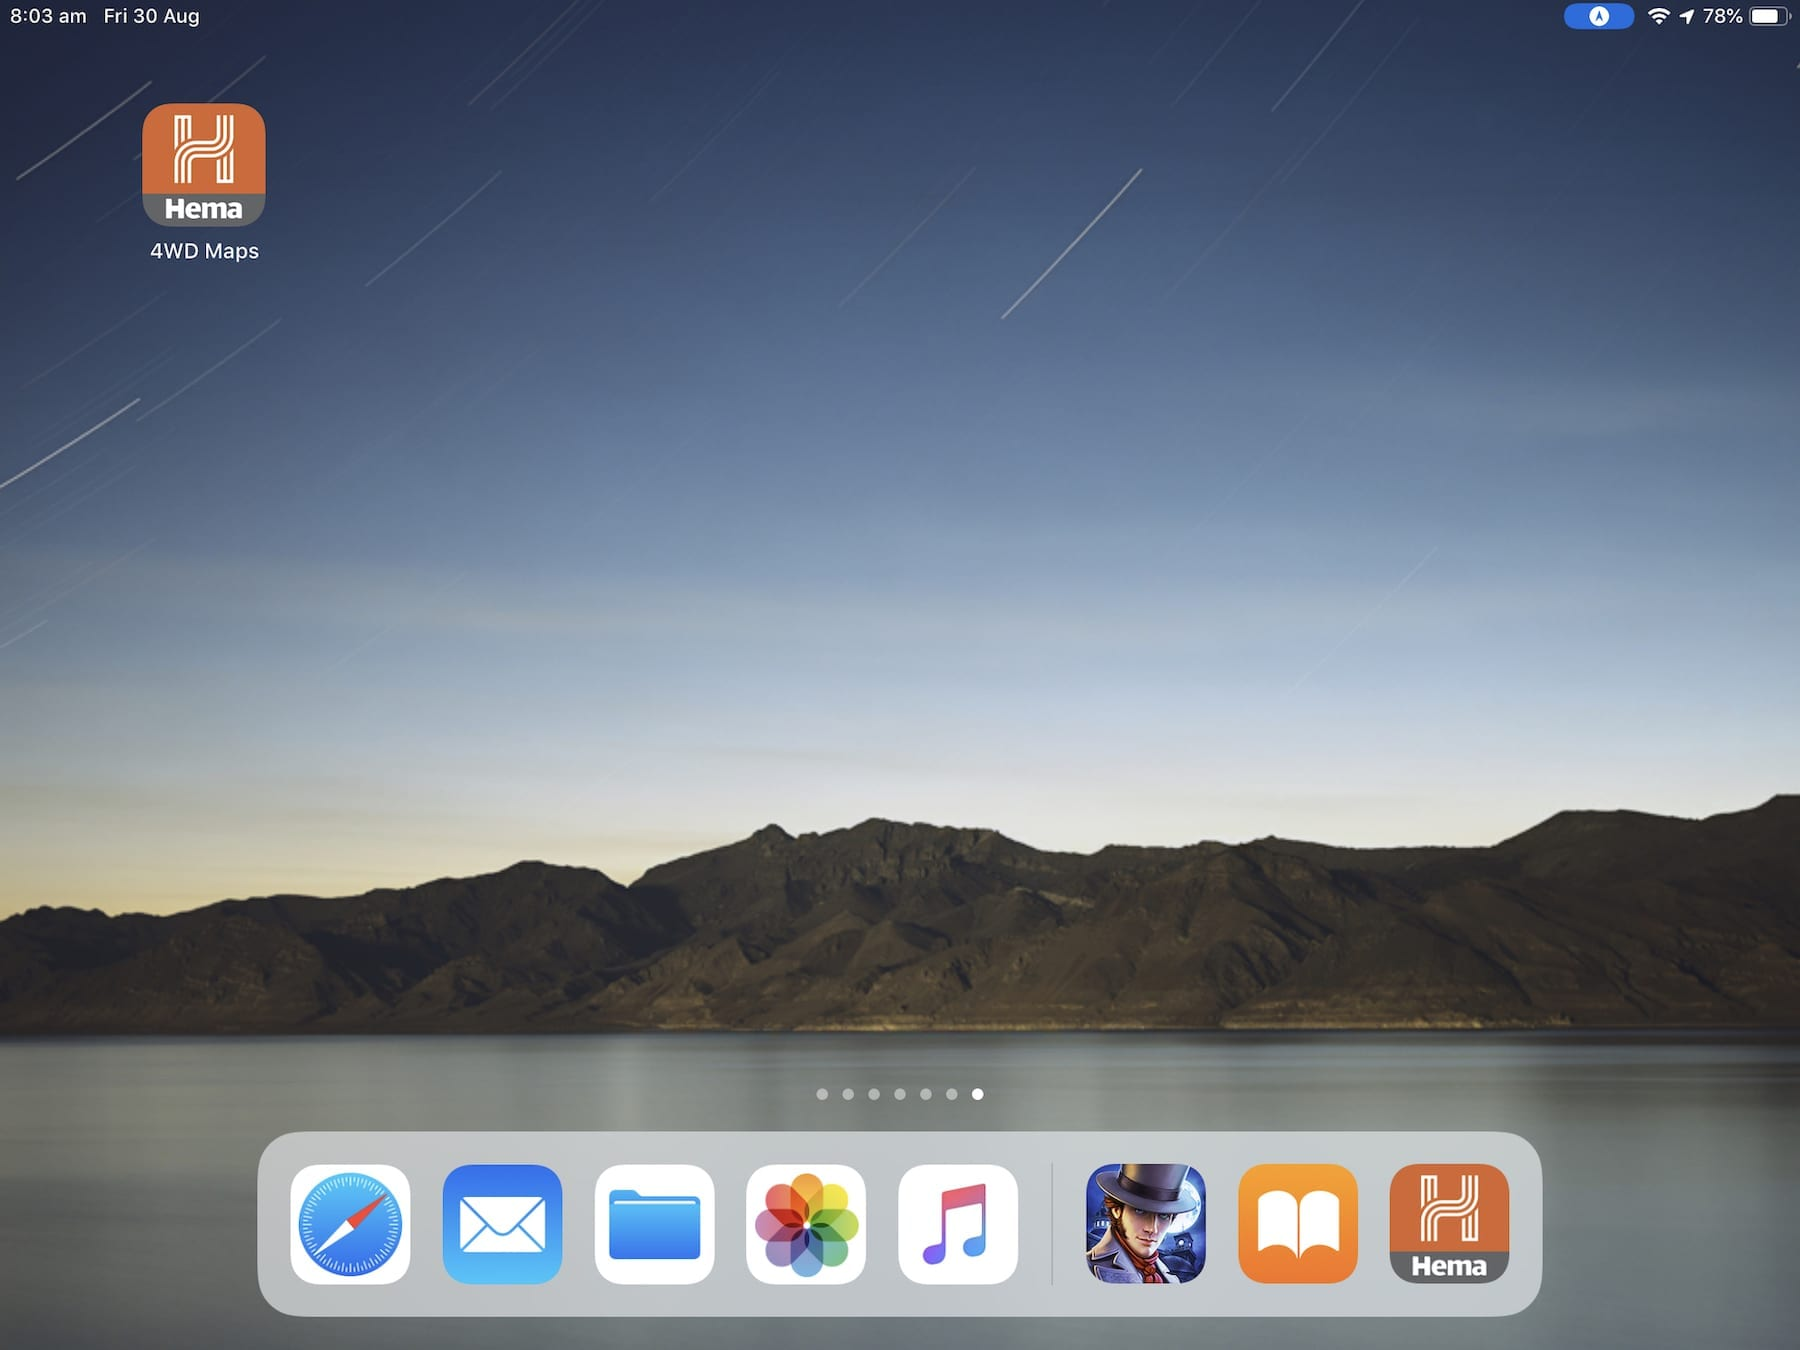 Hema Maps App For iPad | Your Go-To App For Remote & Outback Travel